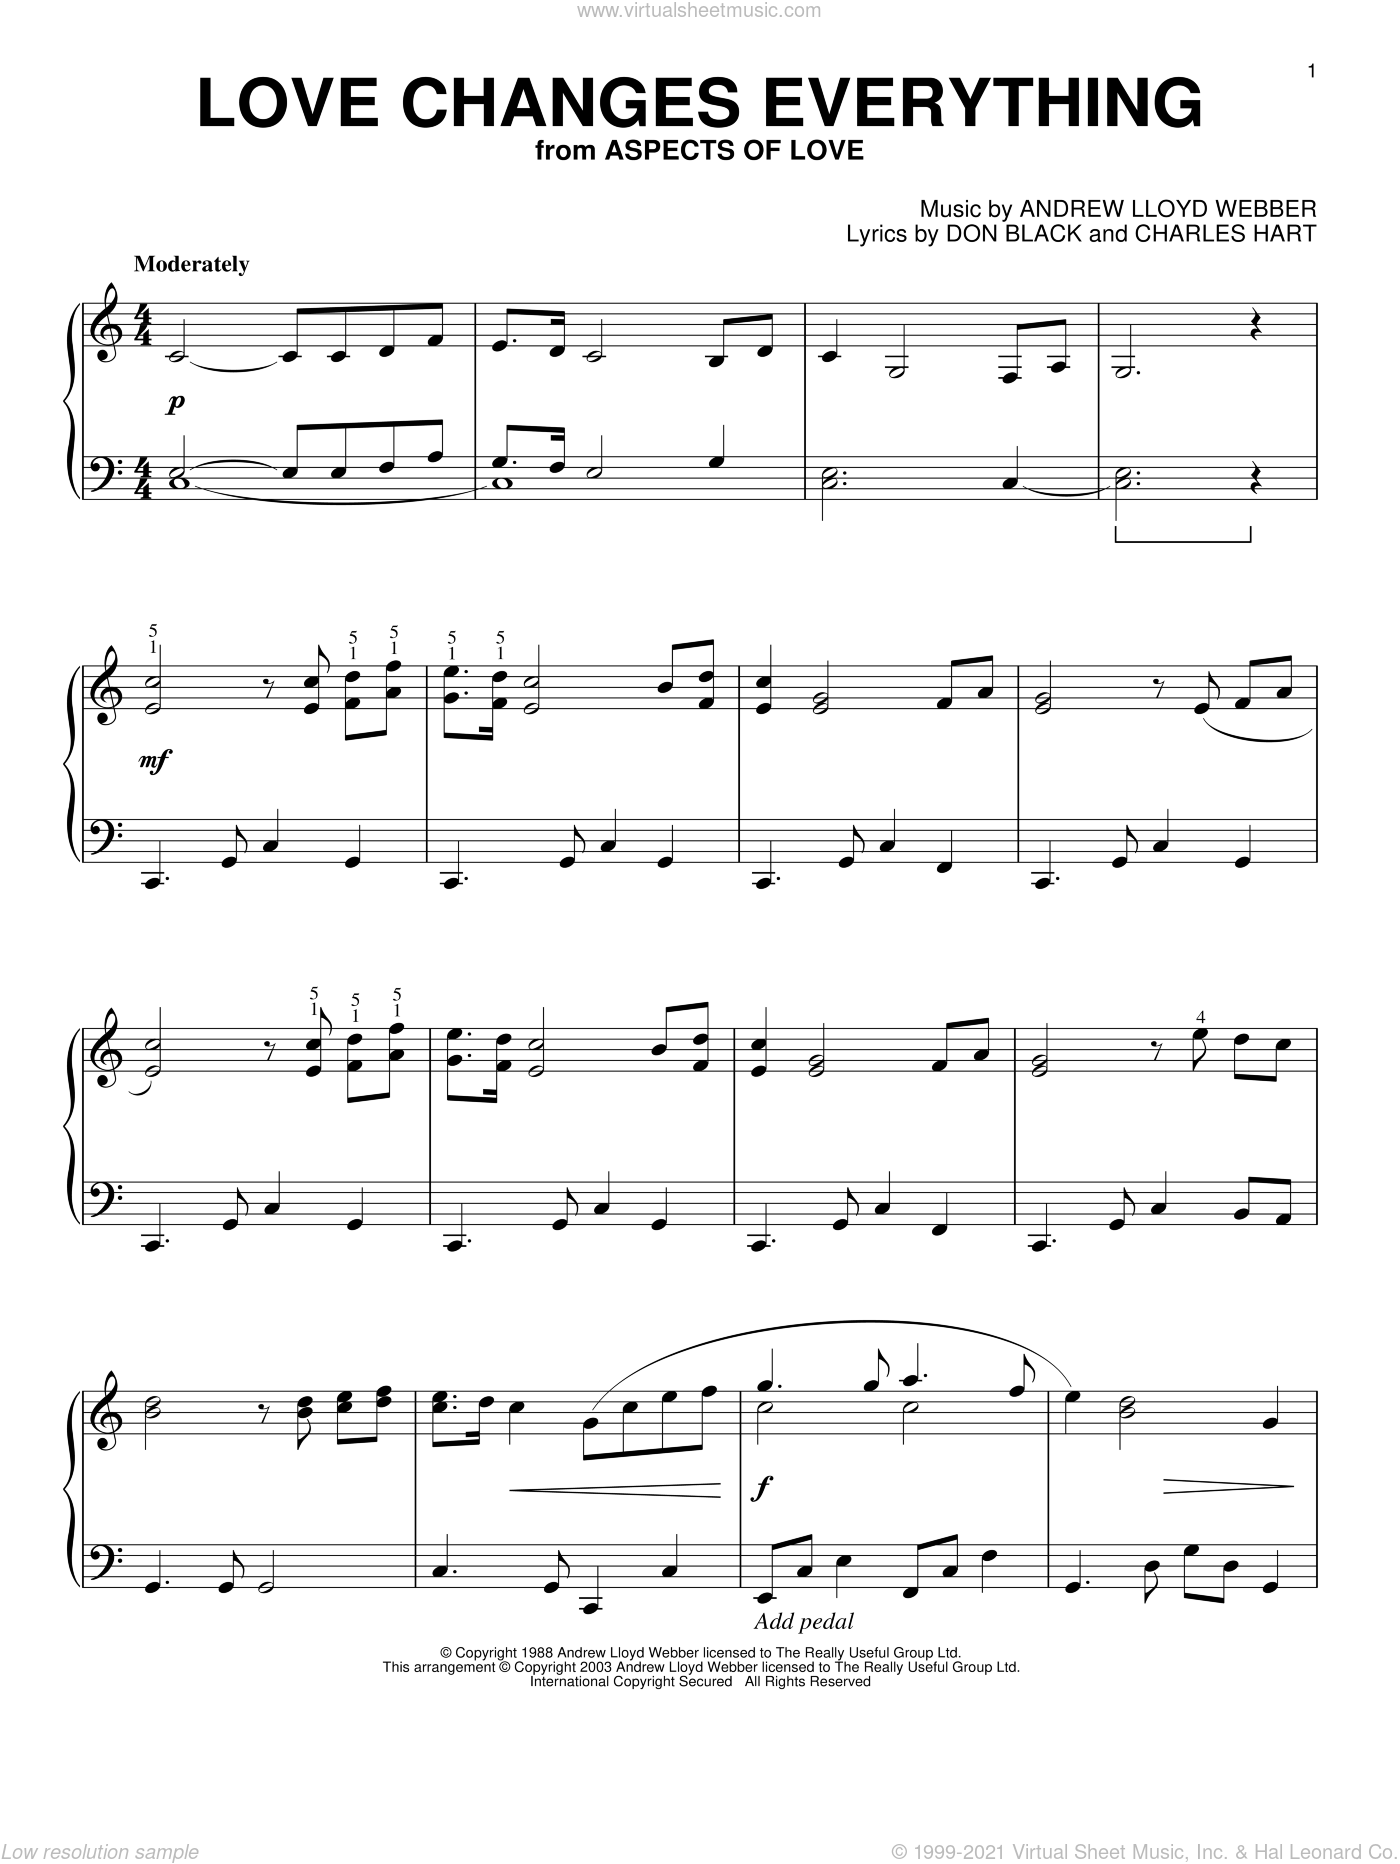 Love Changes Everything sheet music for piano solo by Don Black